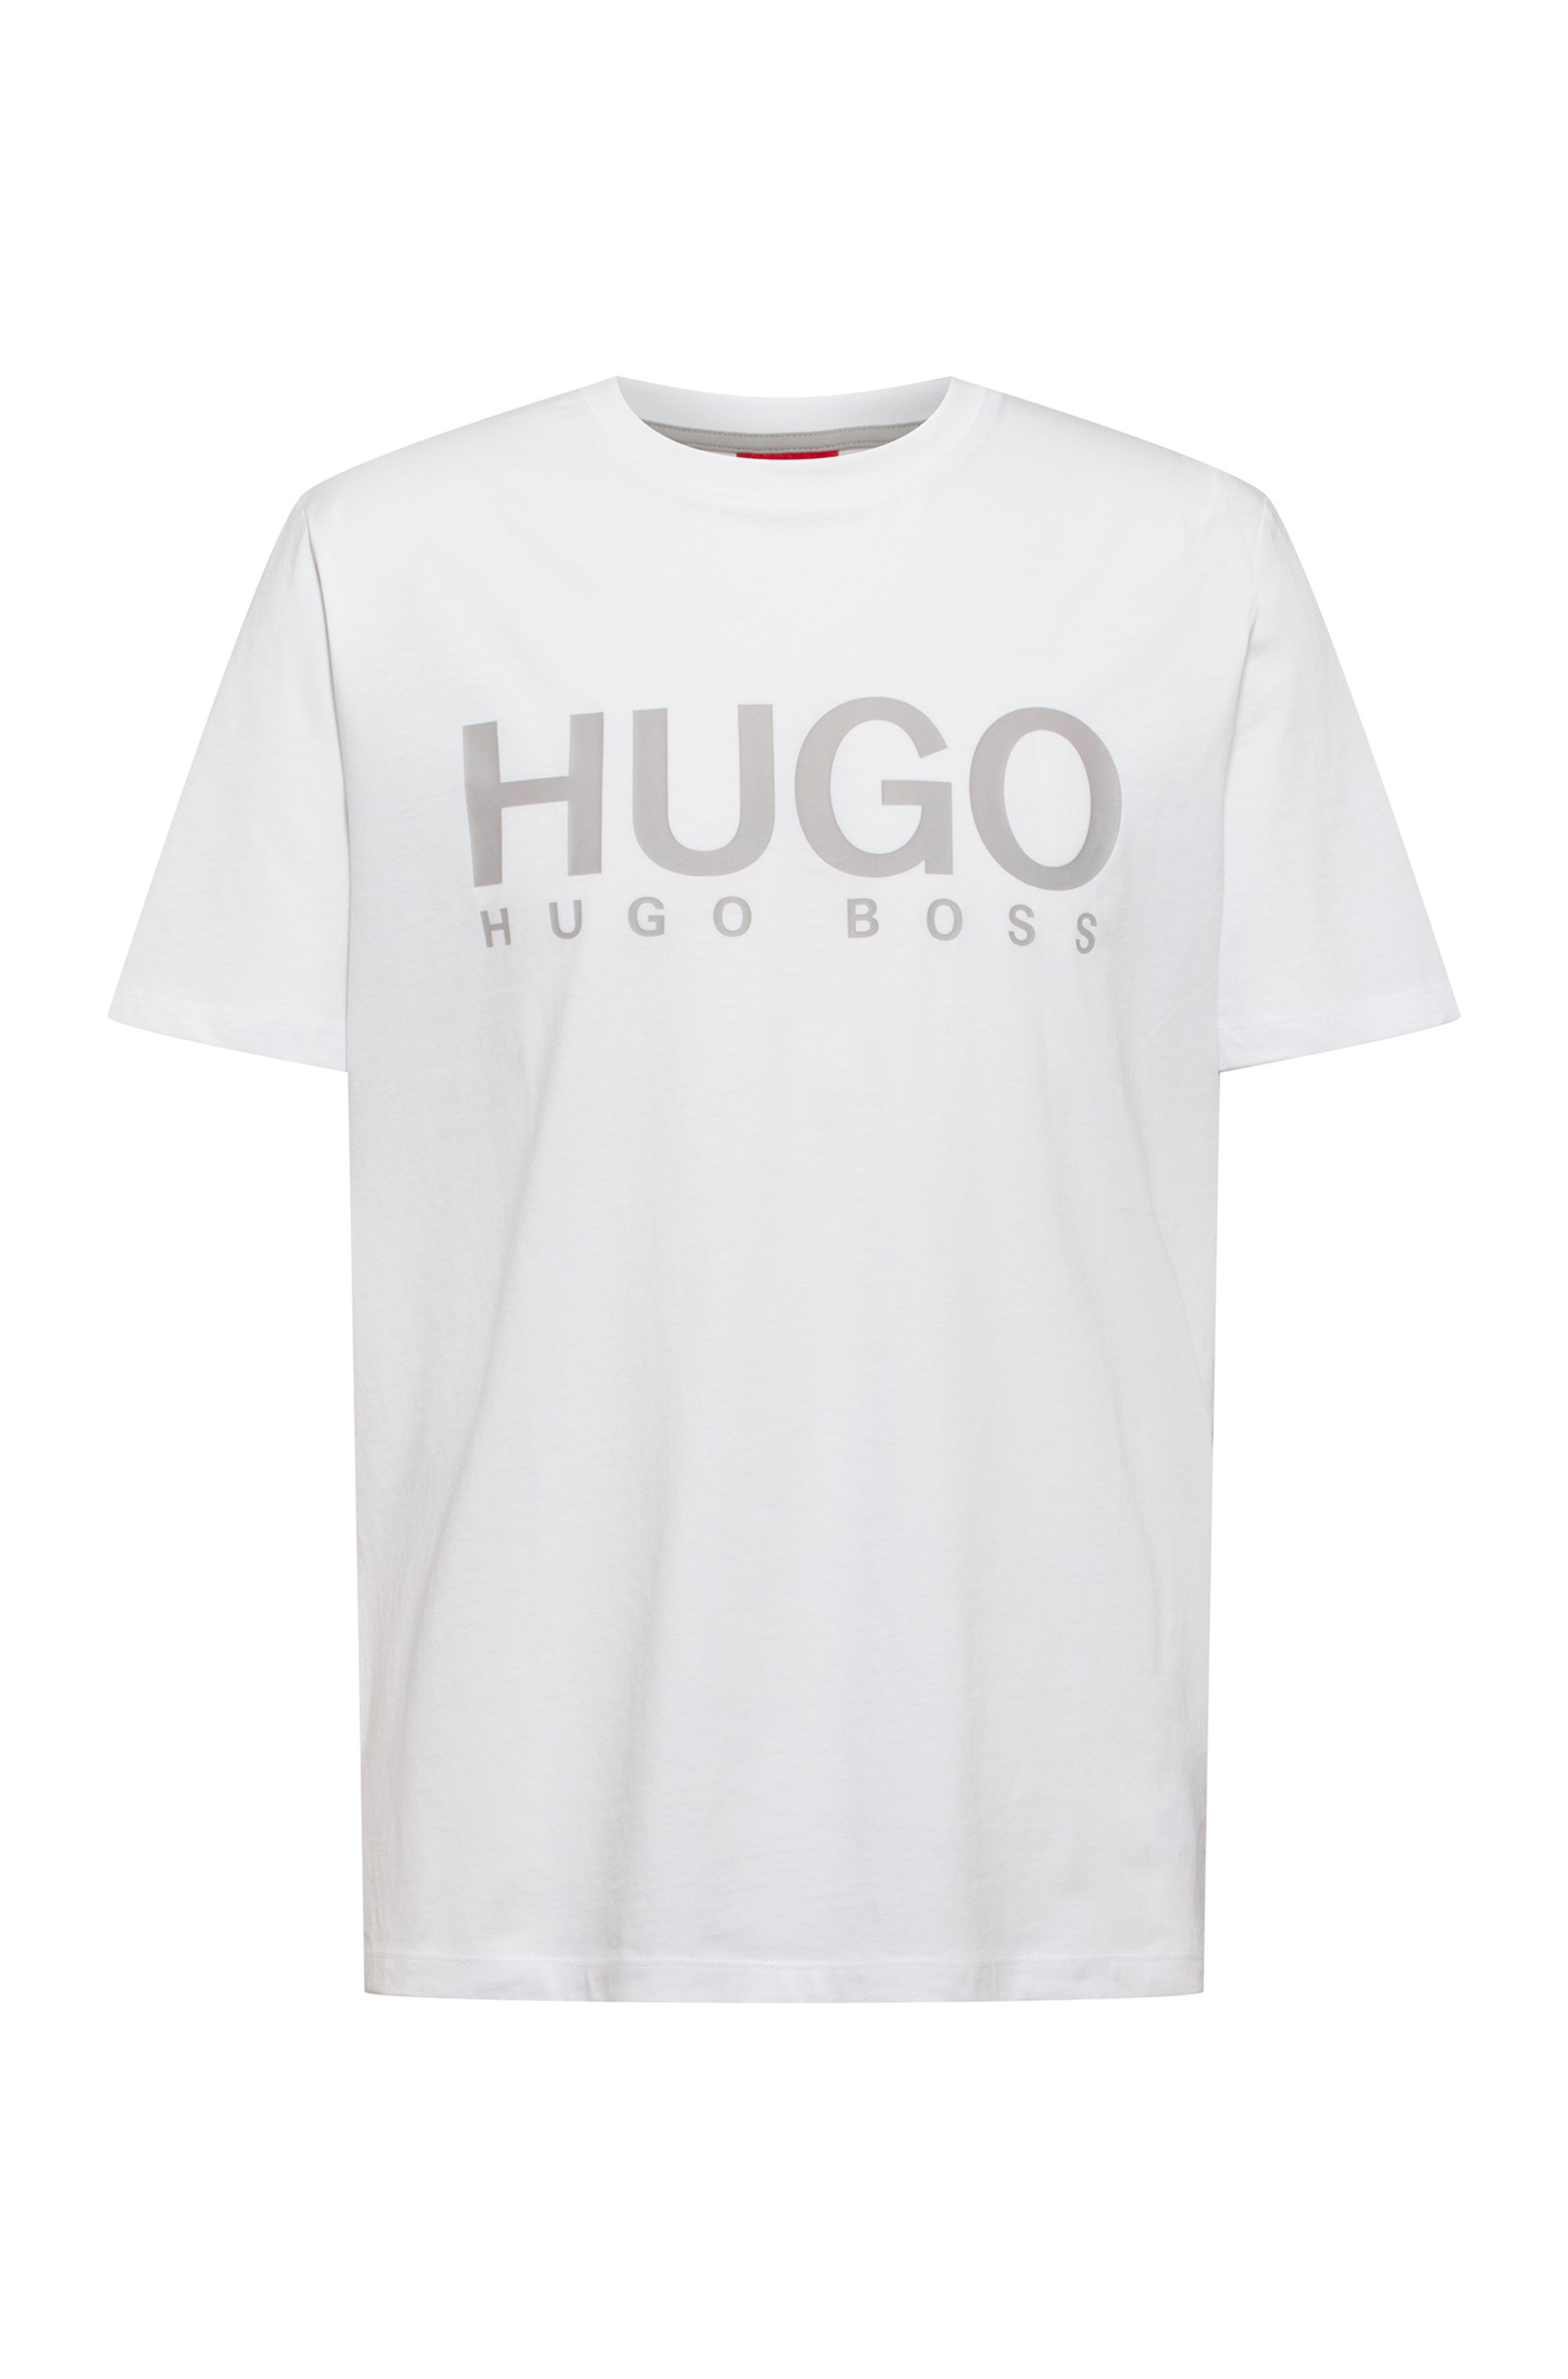 Logo-print crew-neck T-shirt in cotton jersey, White